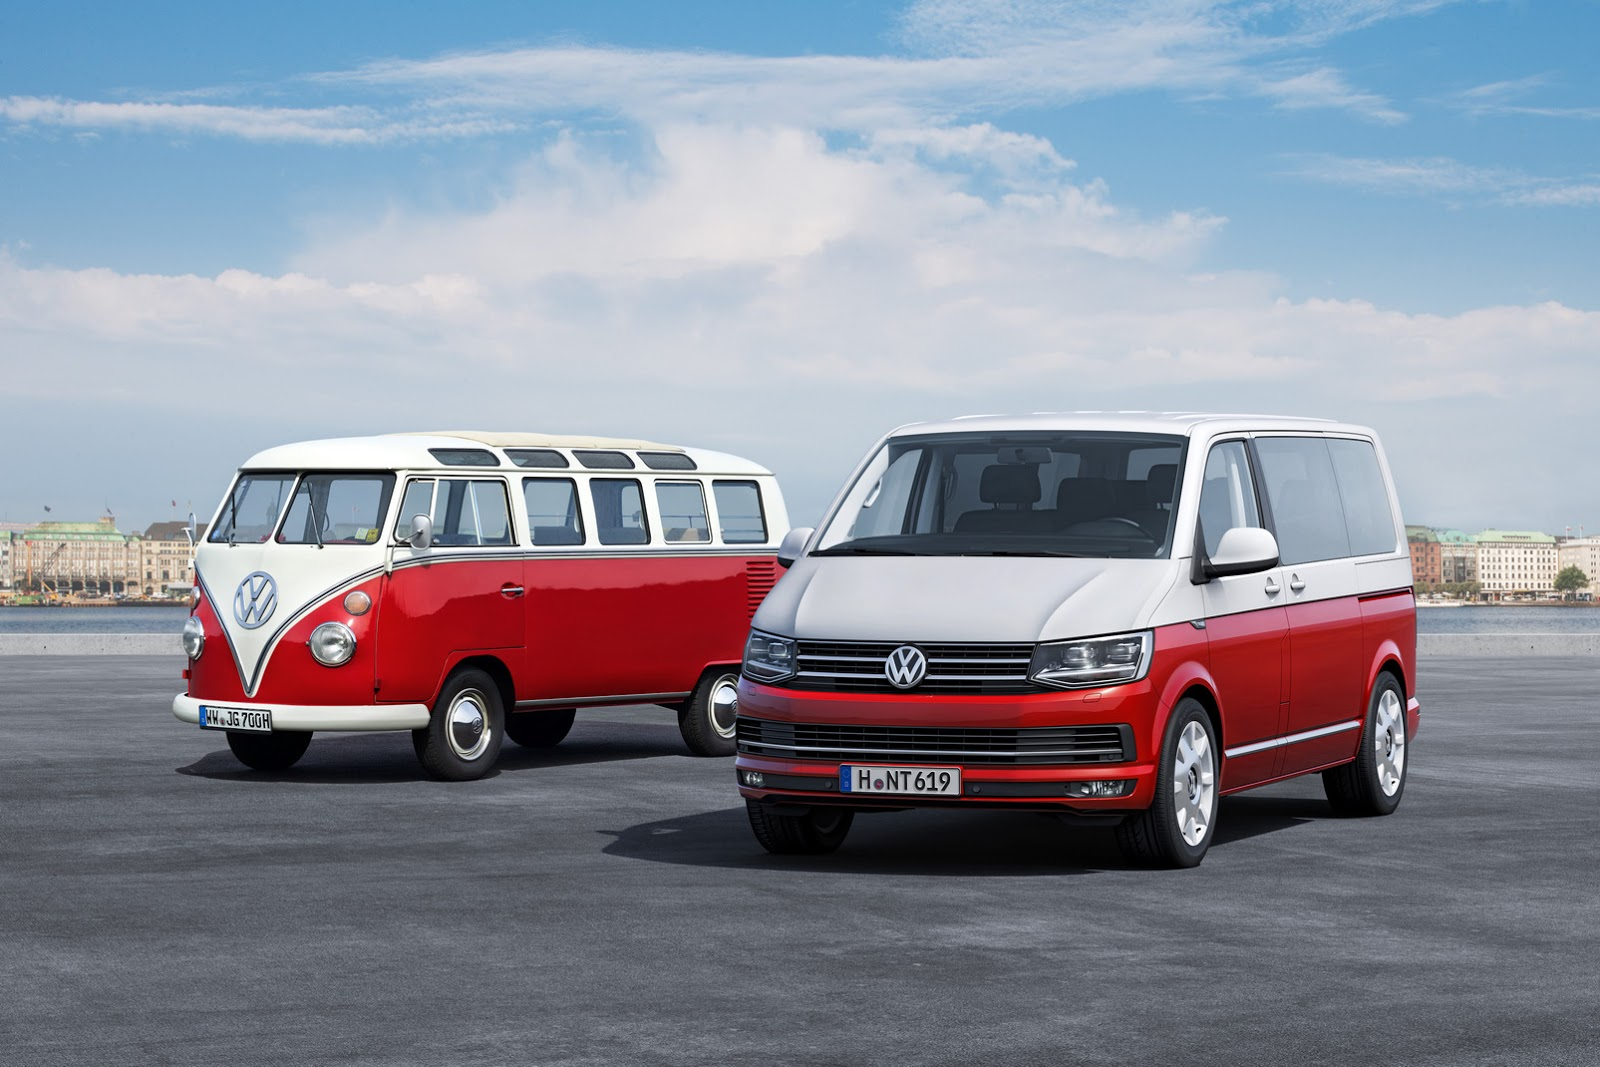 All-new VW T6 Transporter Van is NOT a spiritual successor to the